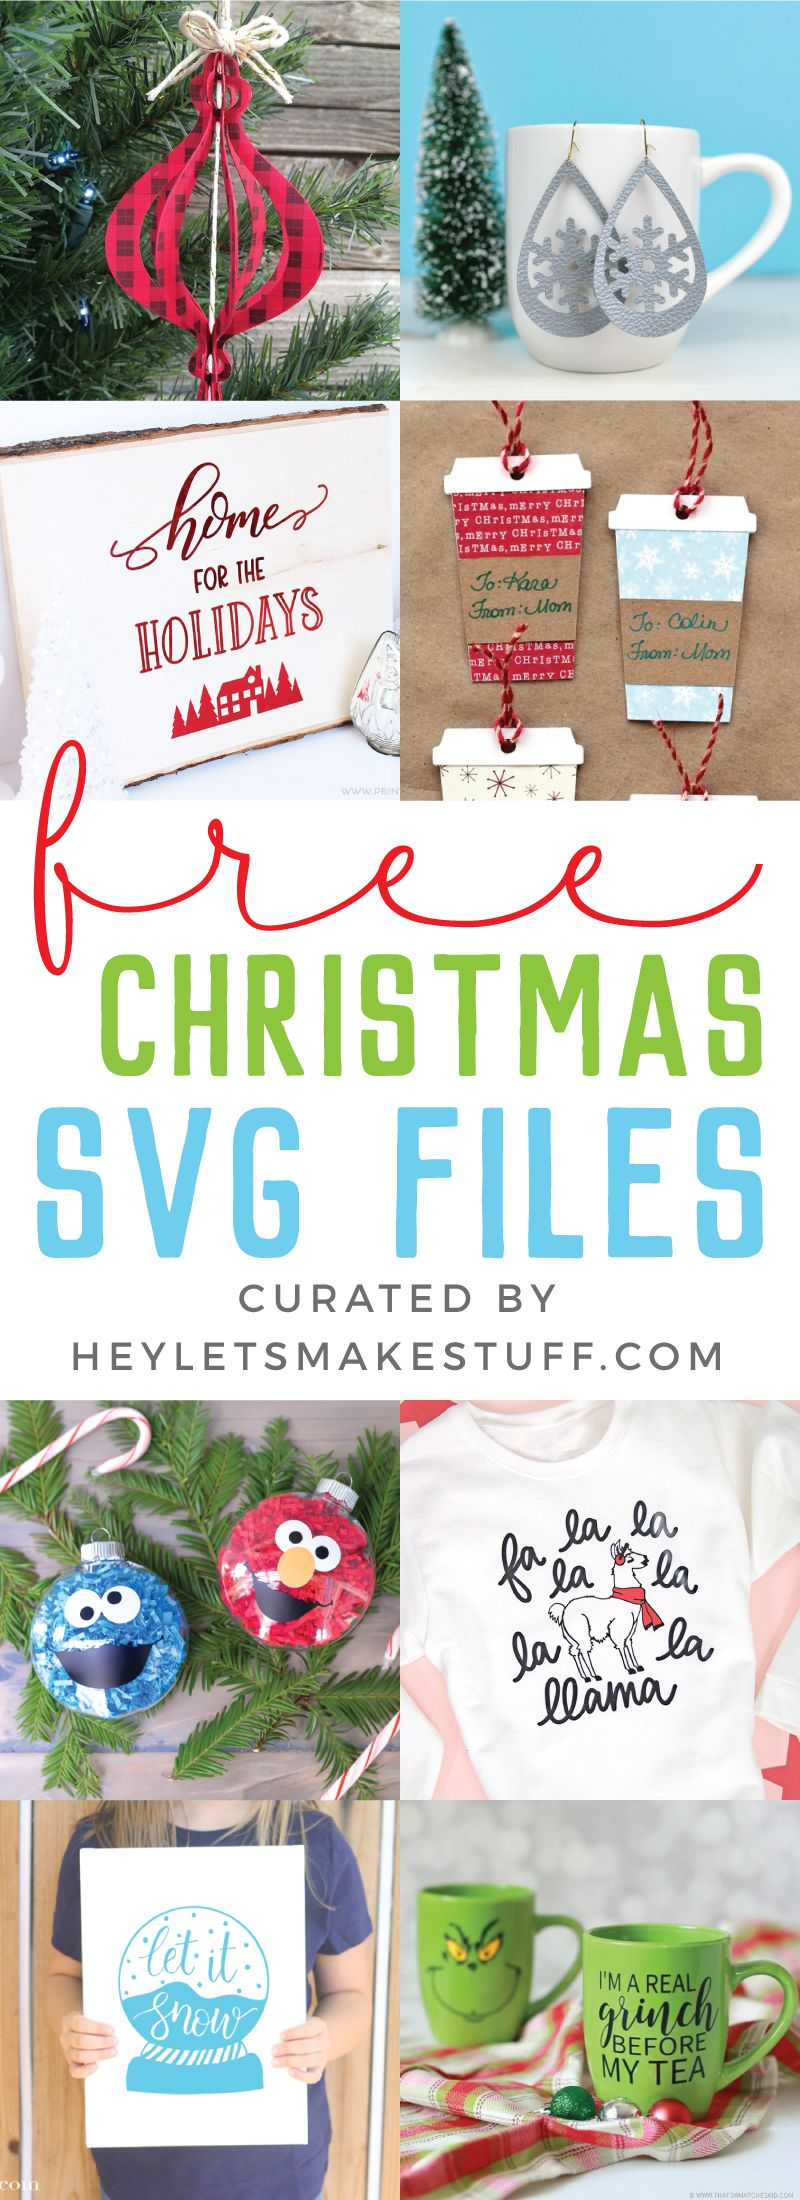 Free SVG Files for Christmas | SVGs | Christmas svg, Svg cuts, Svg